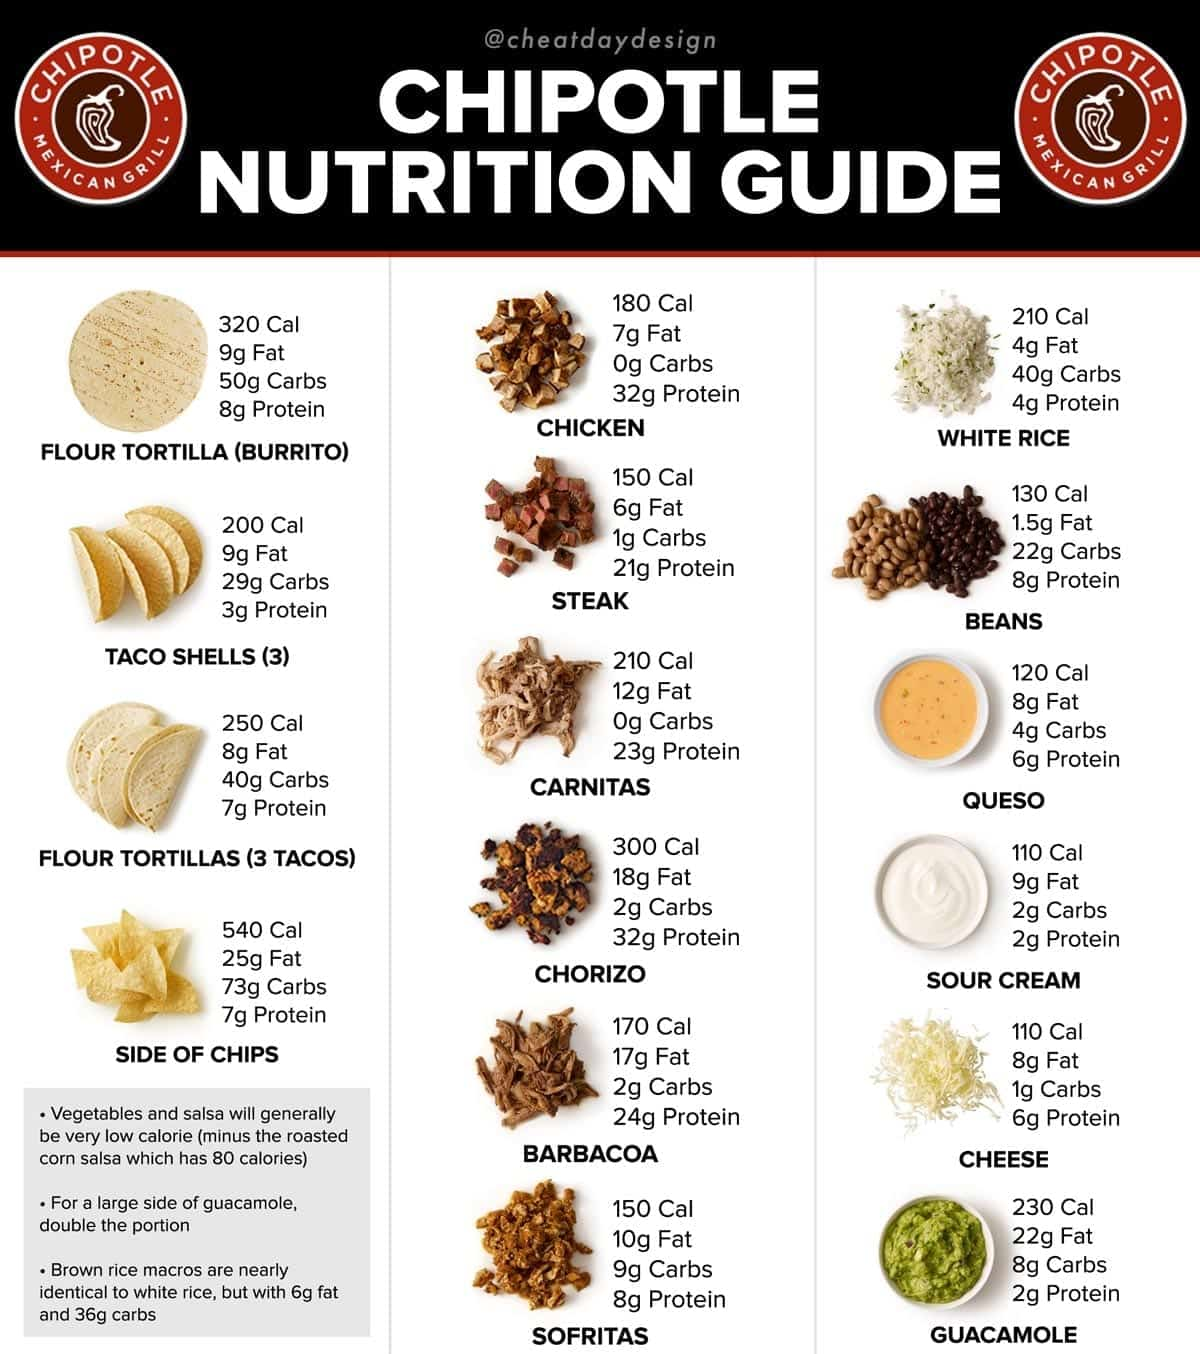 Chipotle calorie and nutrition guide